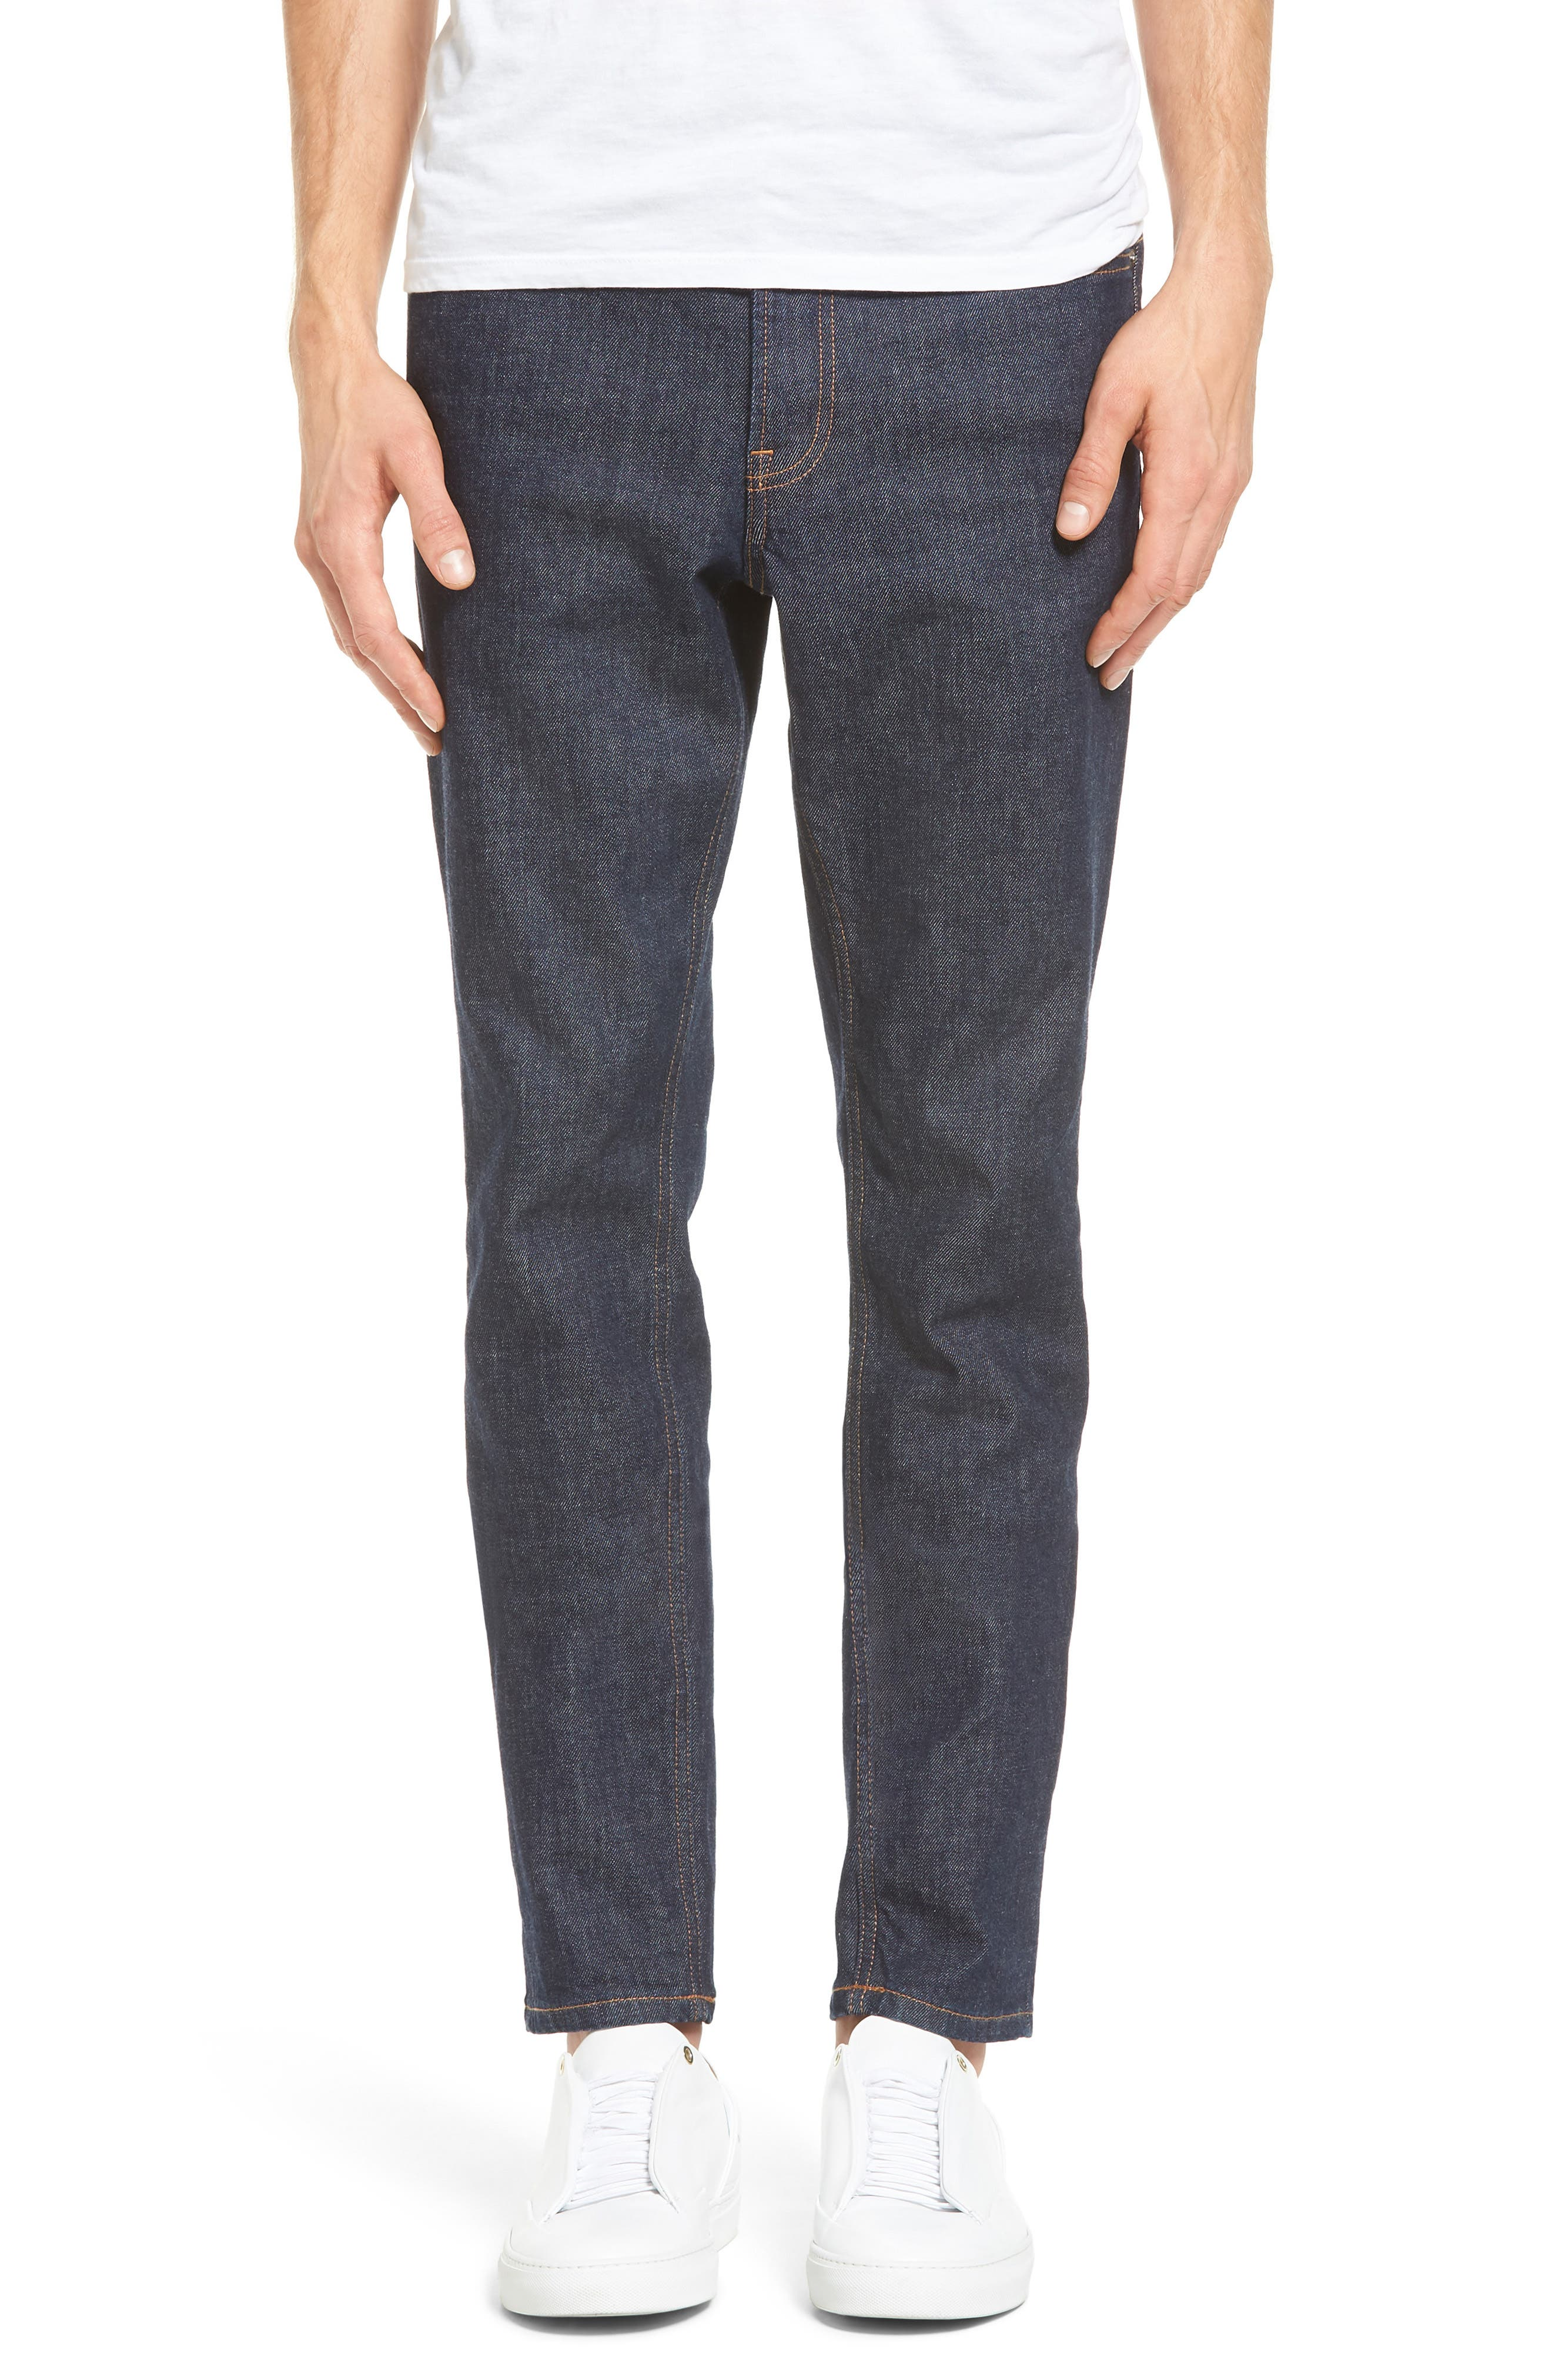 Main Image - Everlane The Slim Fit Jeans